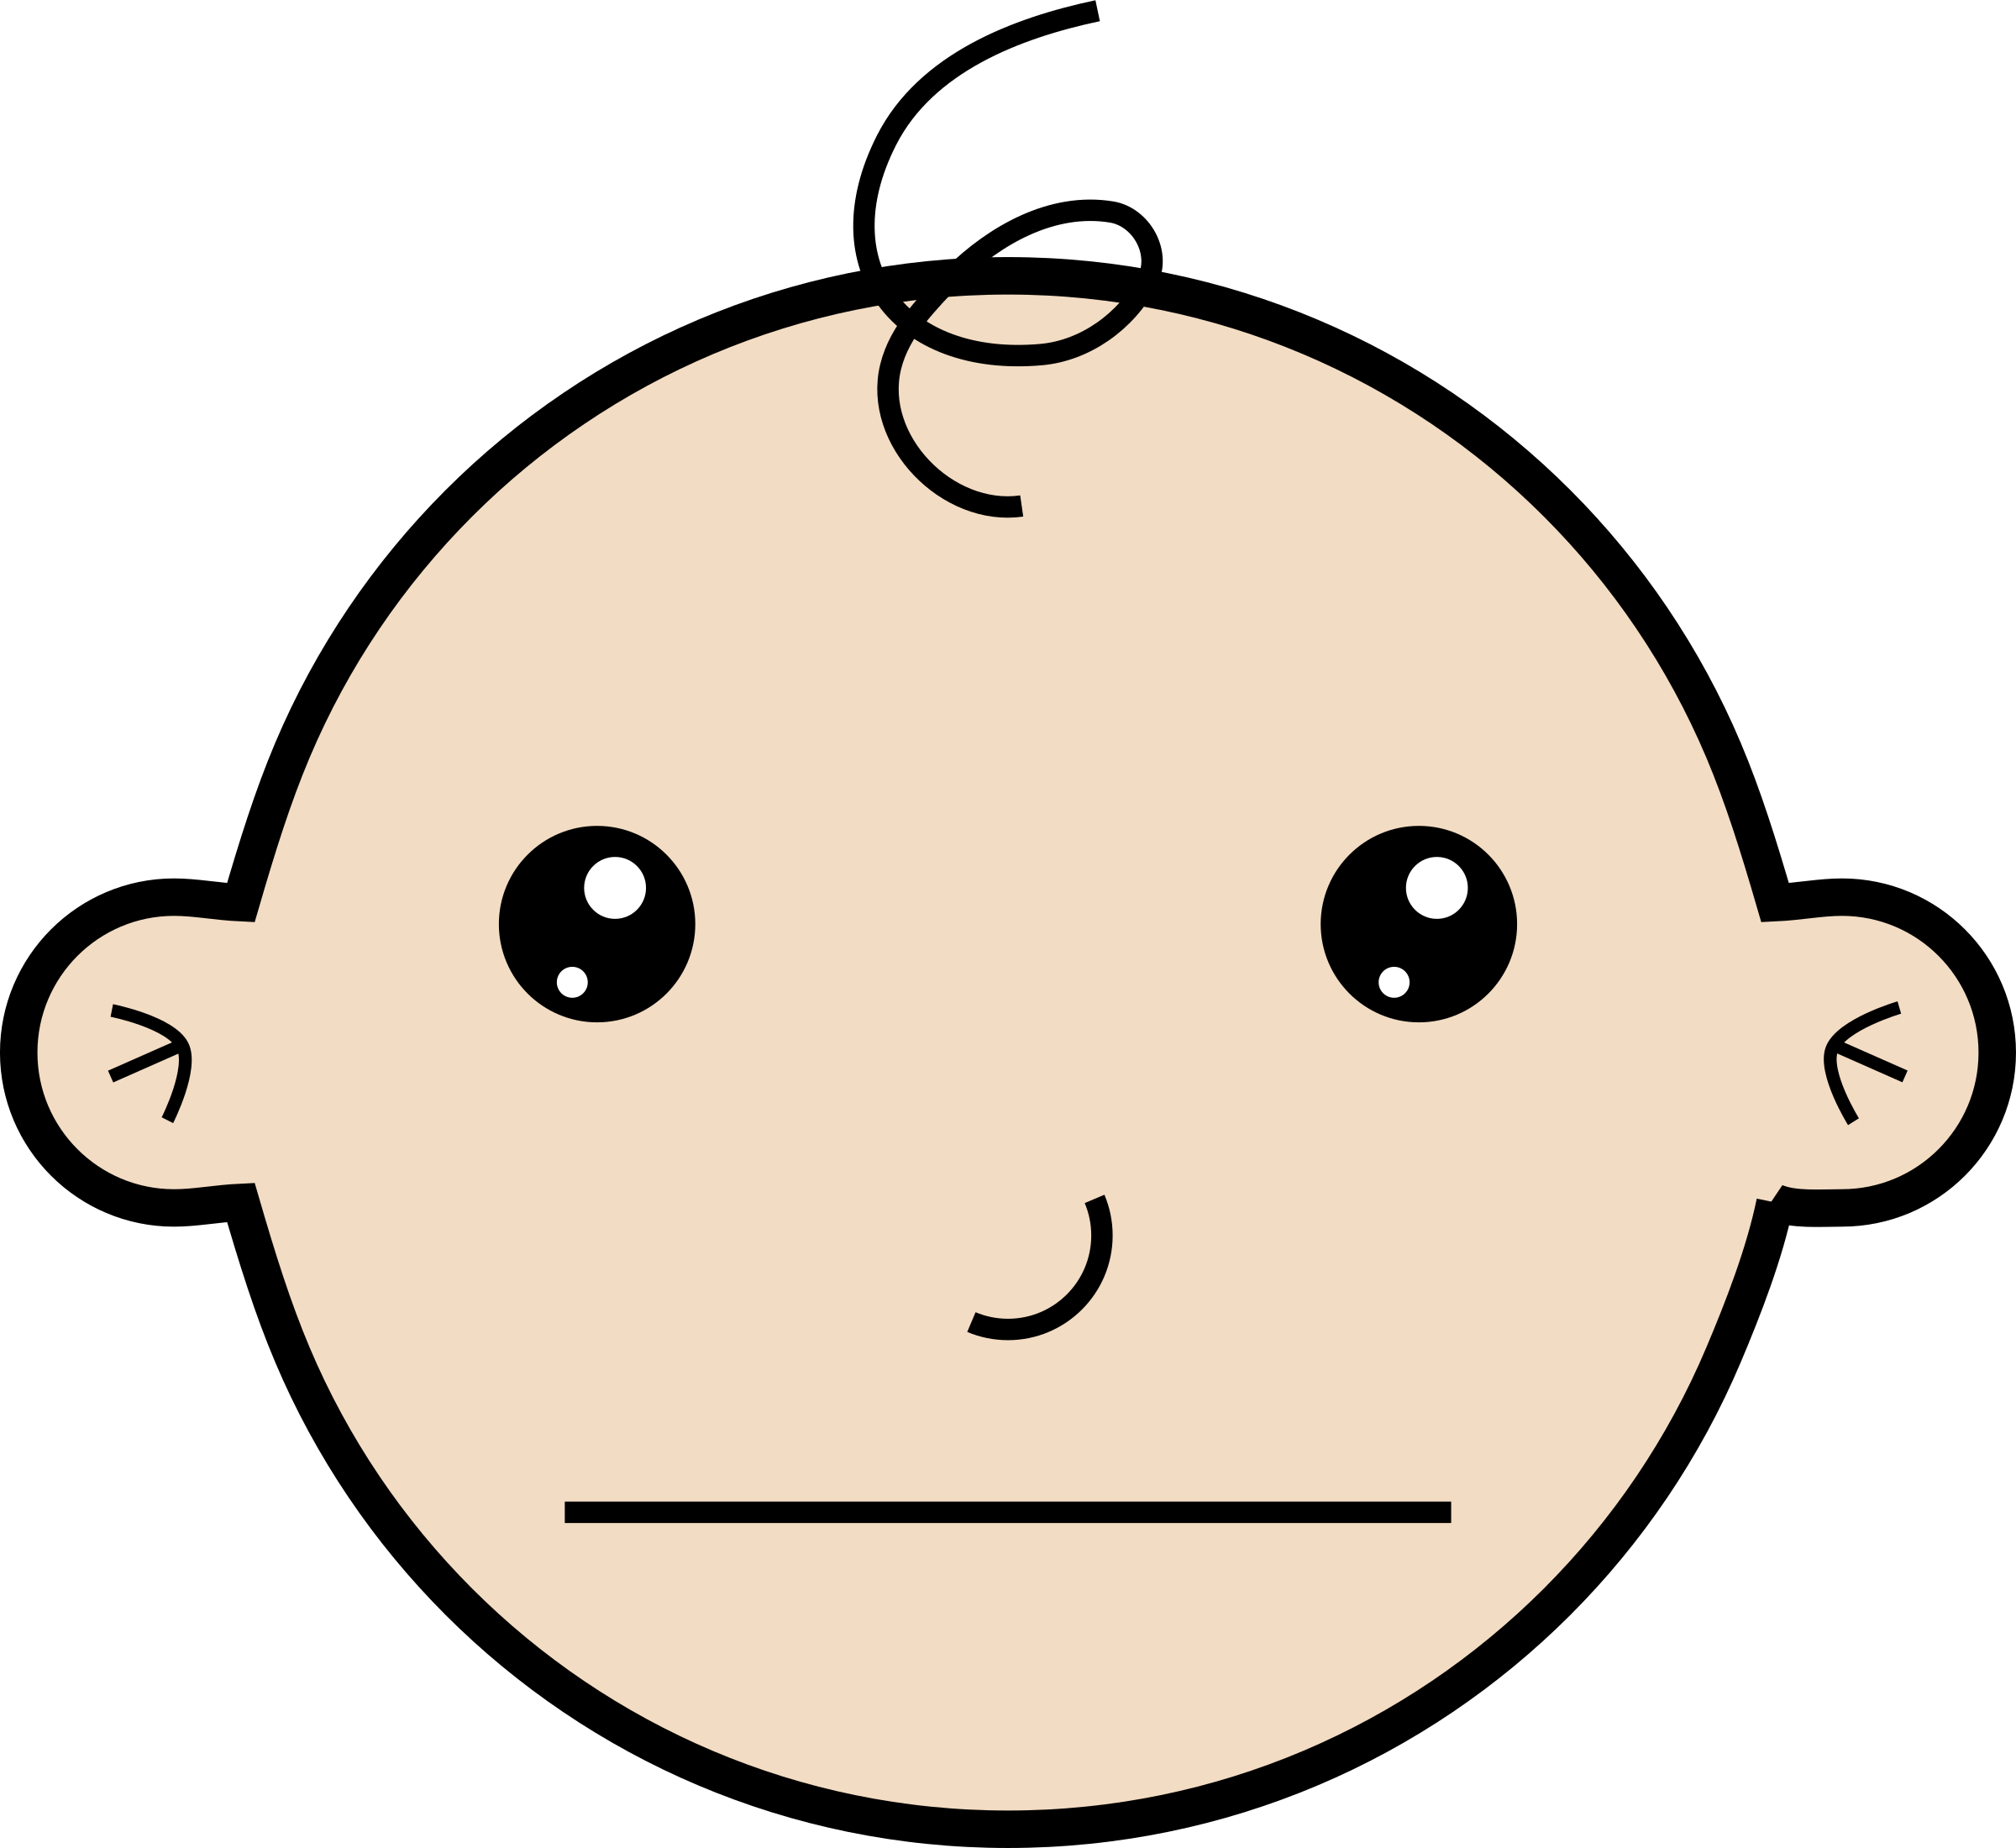 Baby face clipart free download clip art transparent library Baby face cartoon clipart images gallery for free download | MyReal ... clip art transparent library